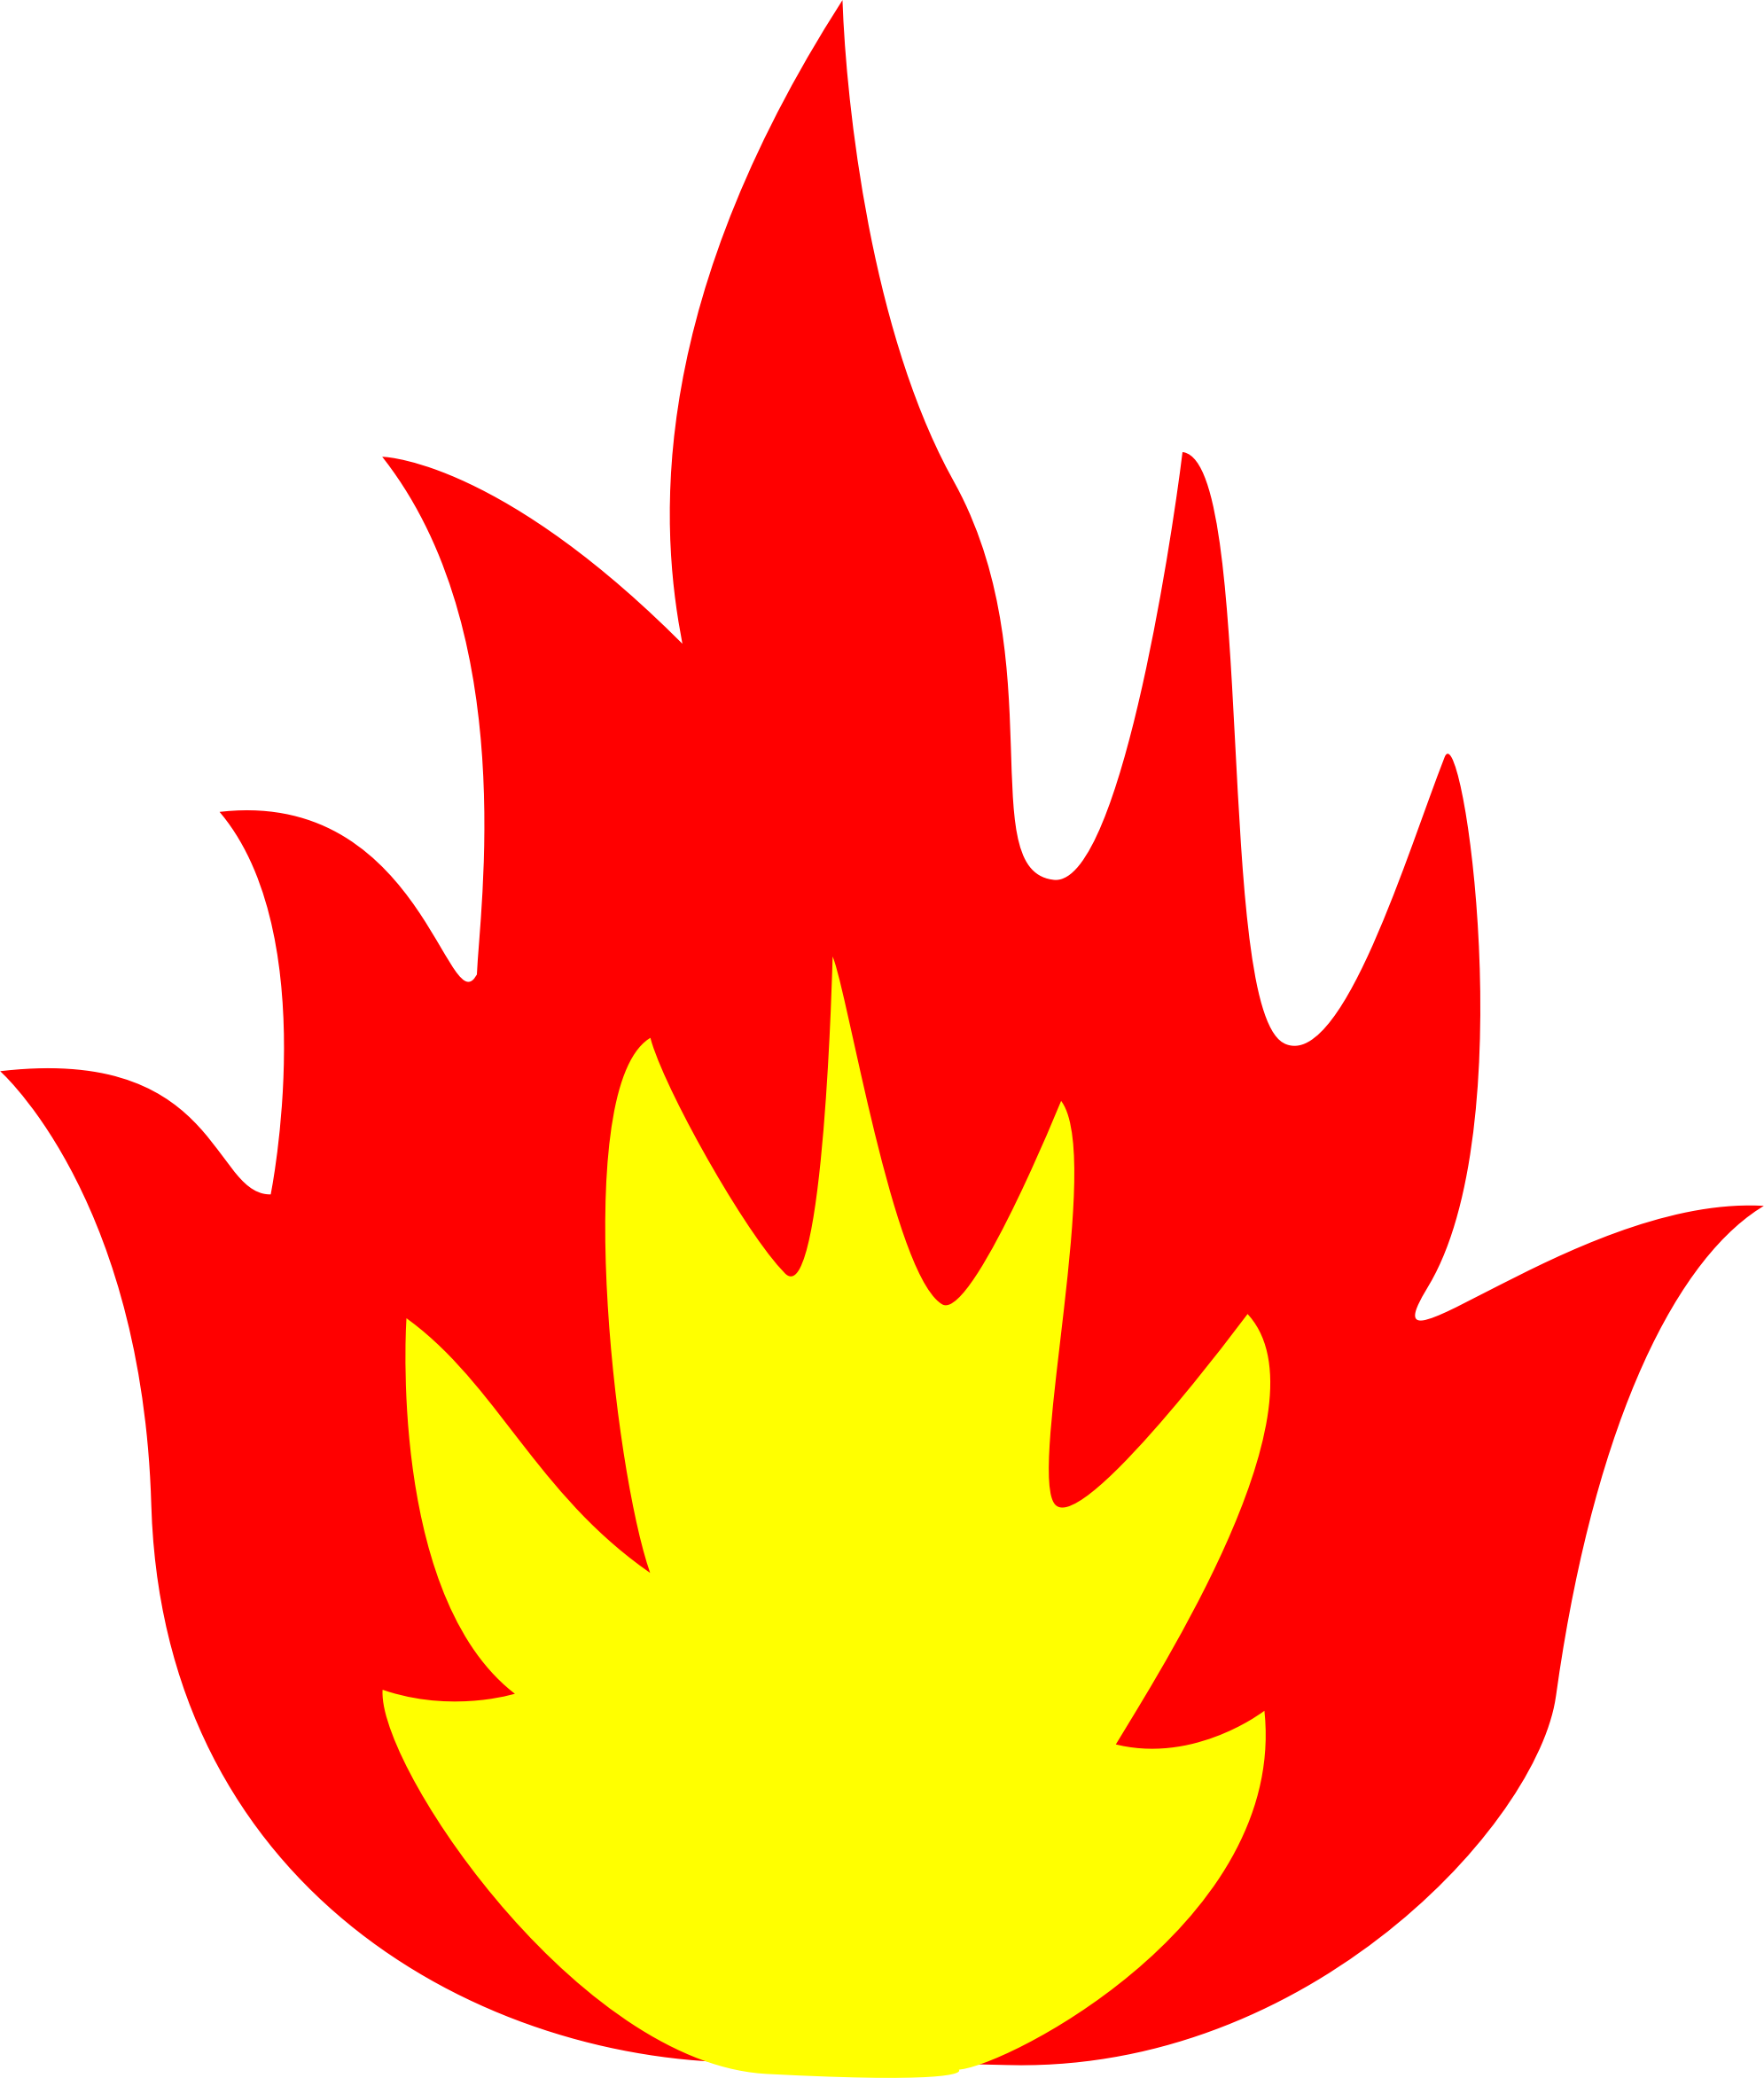 Tree on fire clipart image royalty free library Flames Clipart single - Free Clipart on Dumielauxepices.net image royalty free library